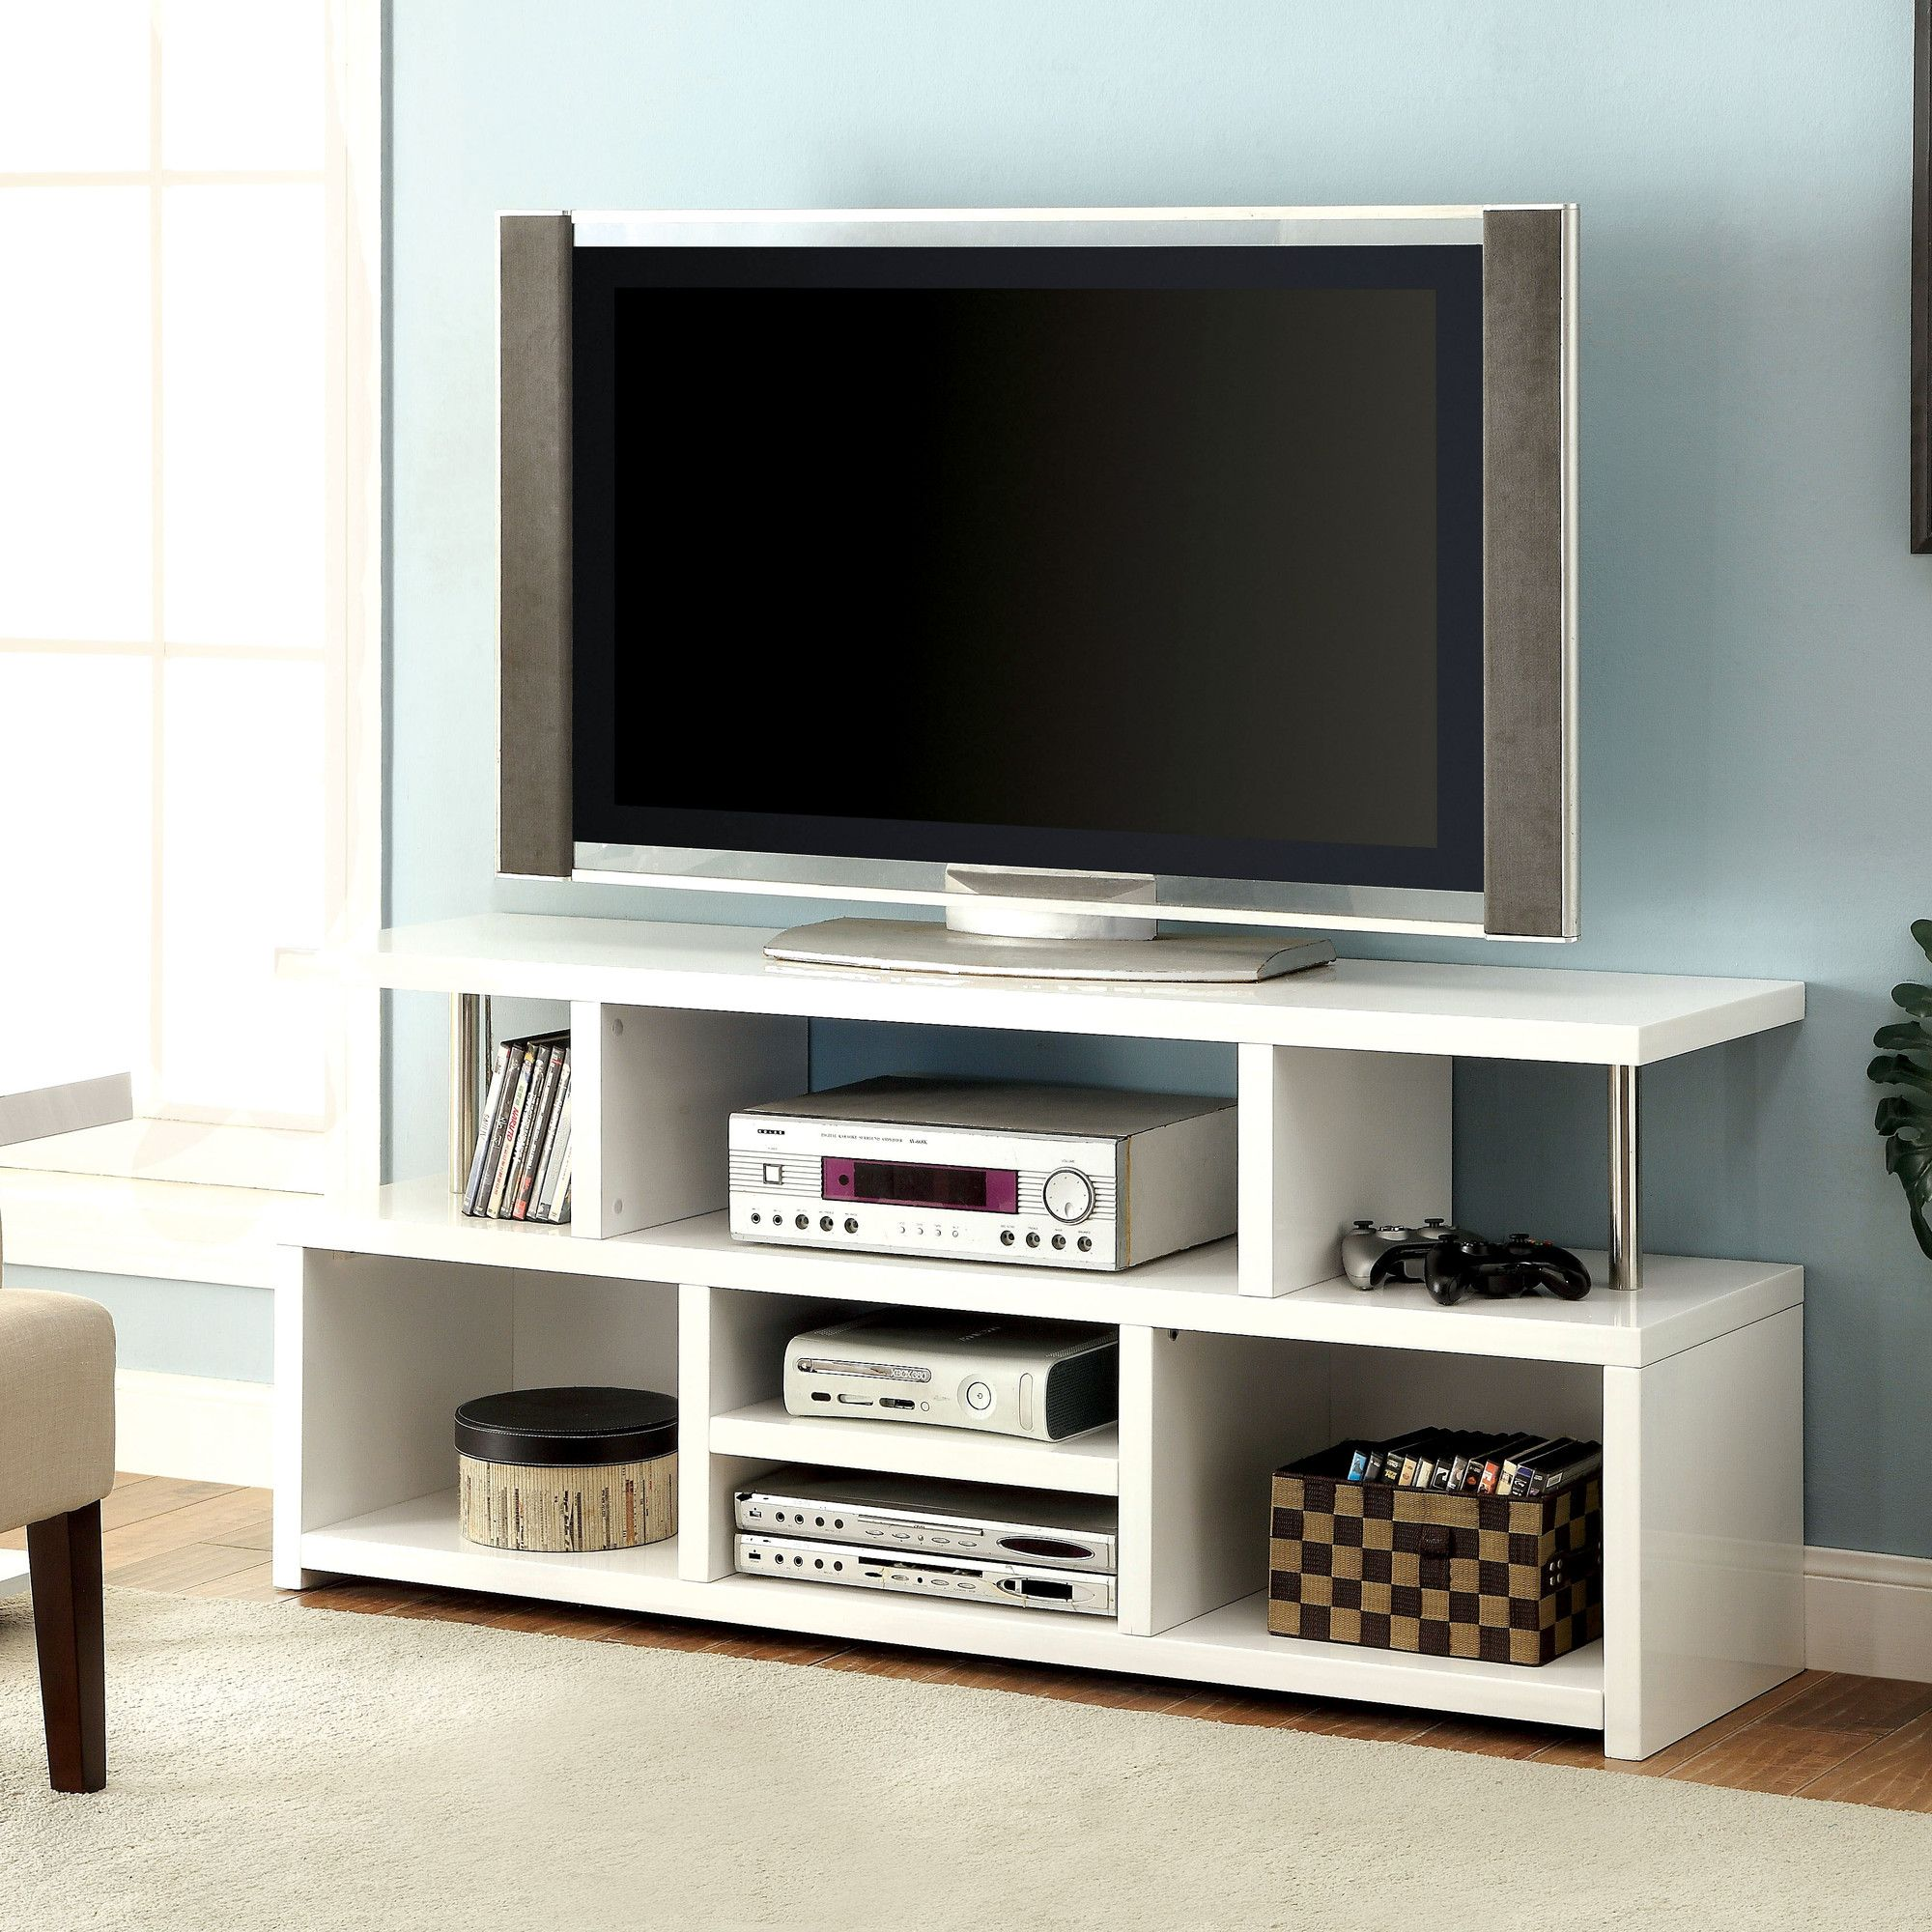 Karl Tv Stand Bedroom Tv Stand Tv Stand Designs Wooden Tv Stands